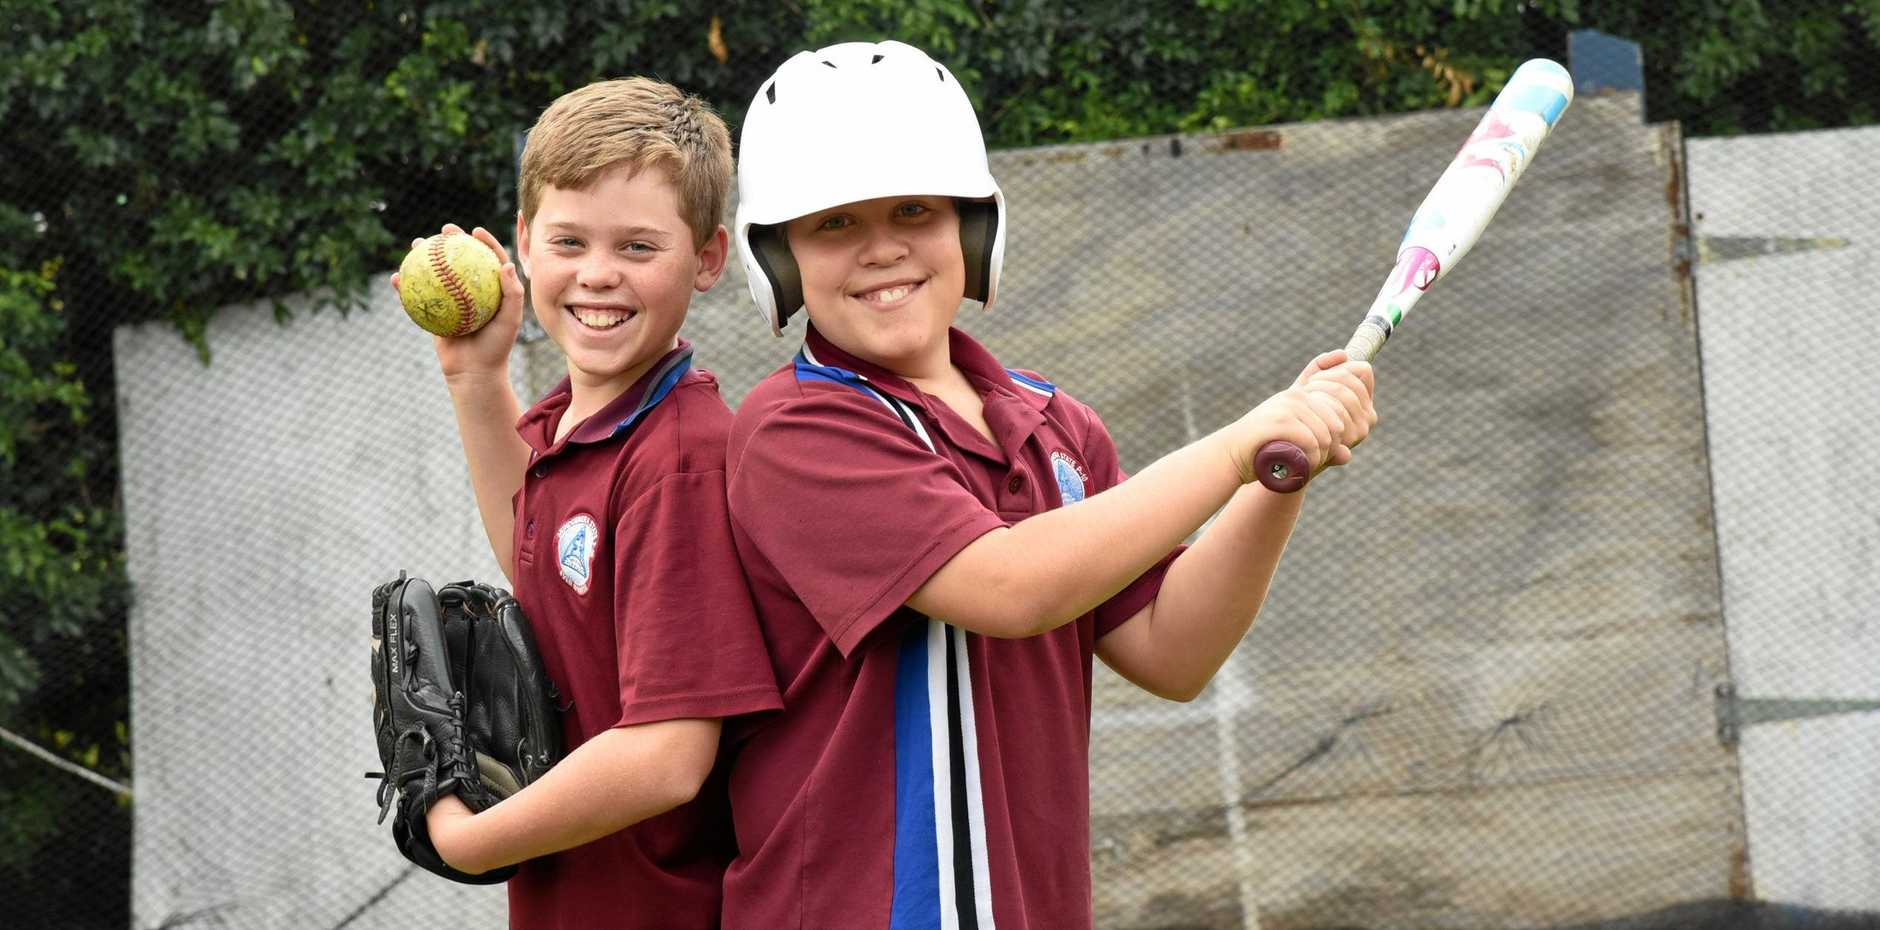 Mundubbera twins Jayden and Nate Pashley will represent Wide Bay at the softball State Championships in Mackay in September.